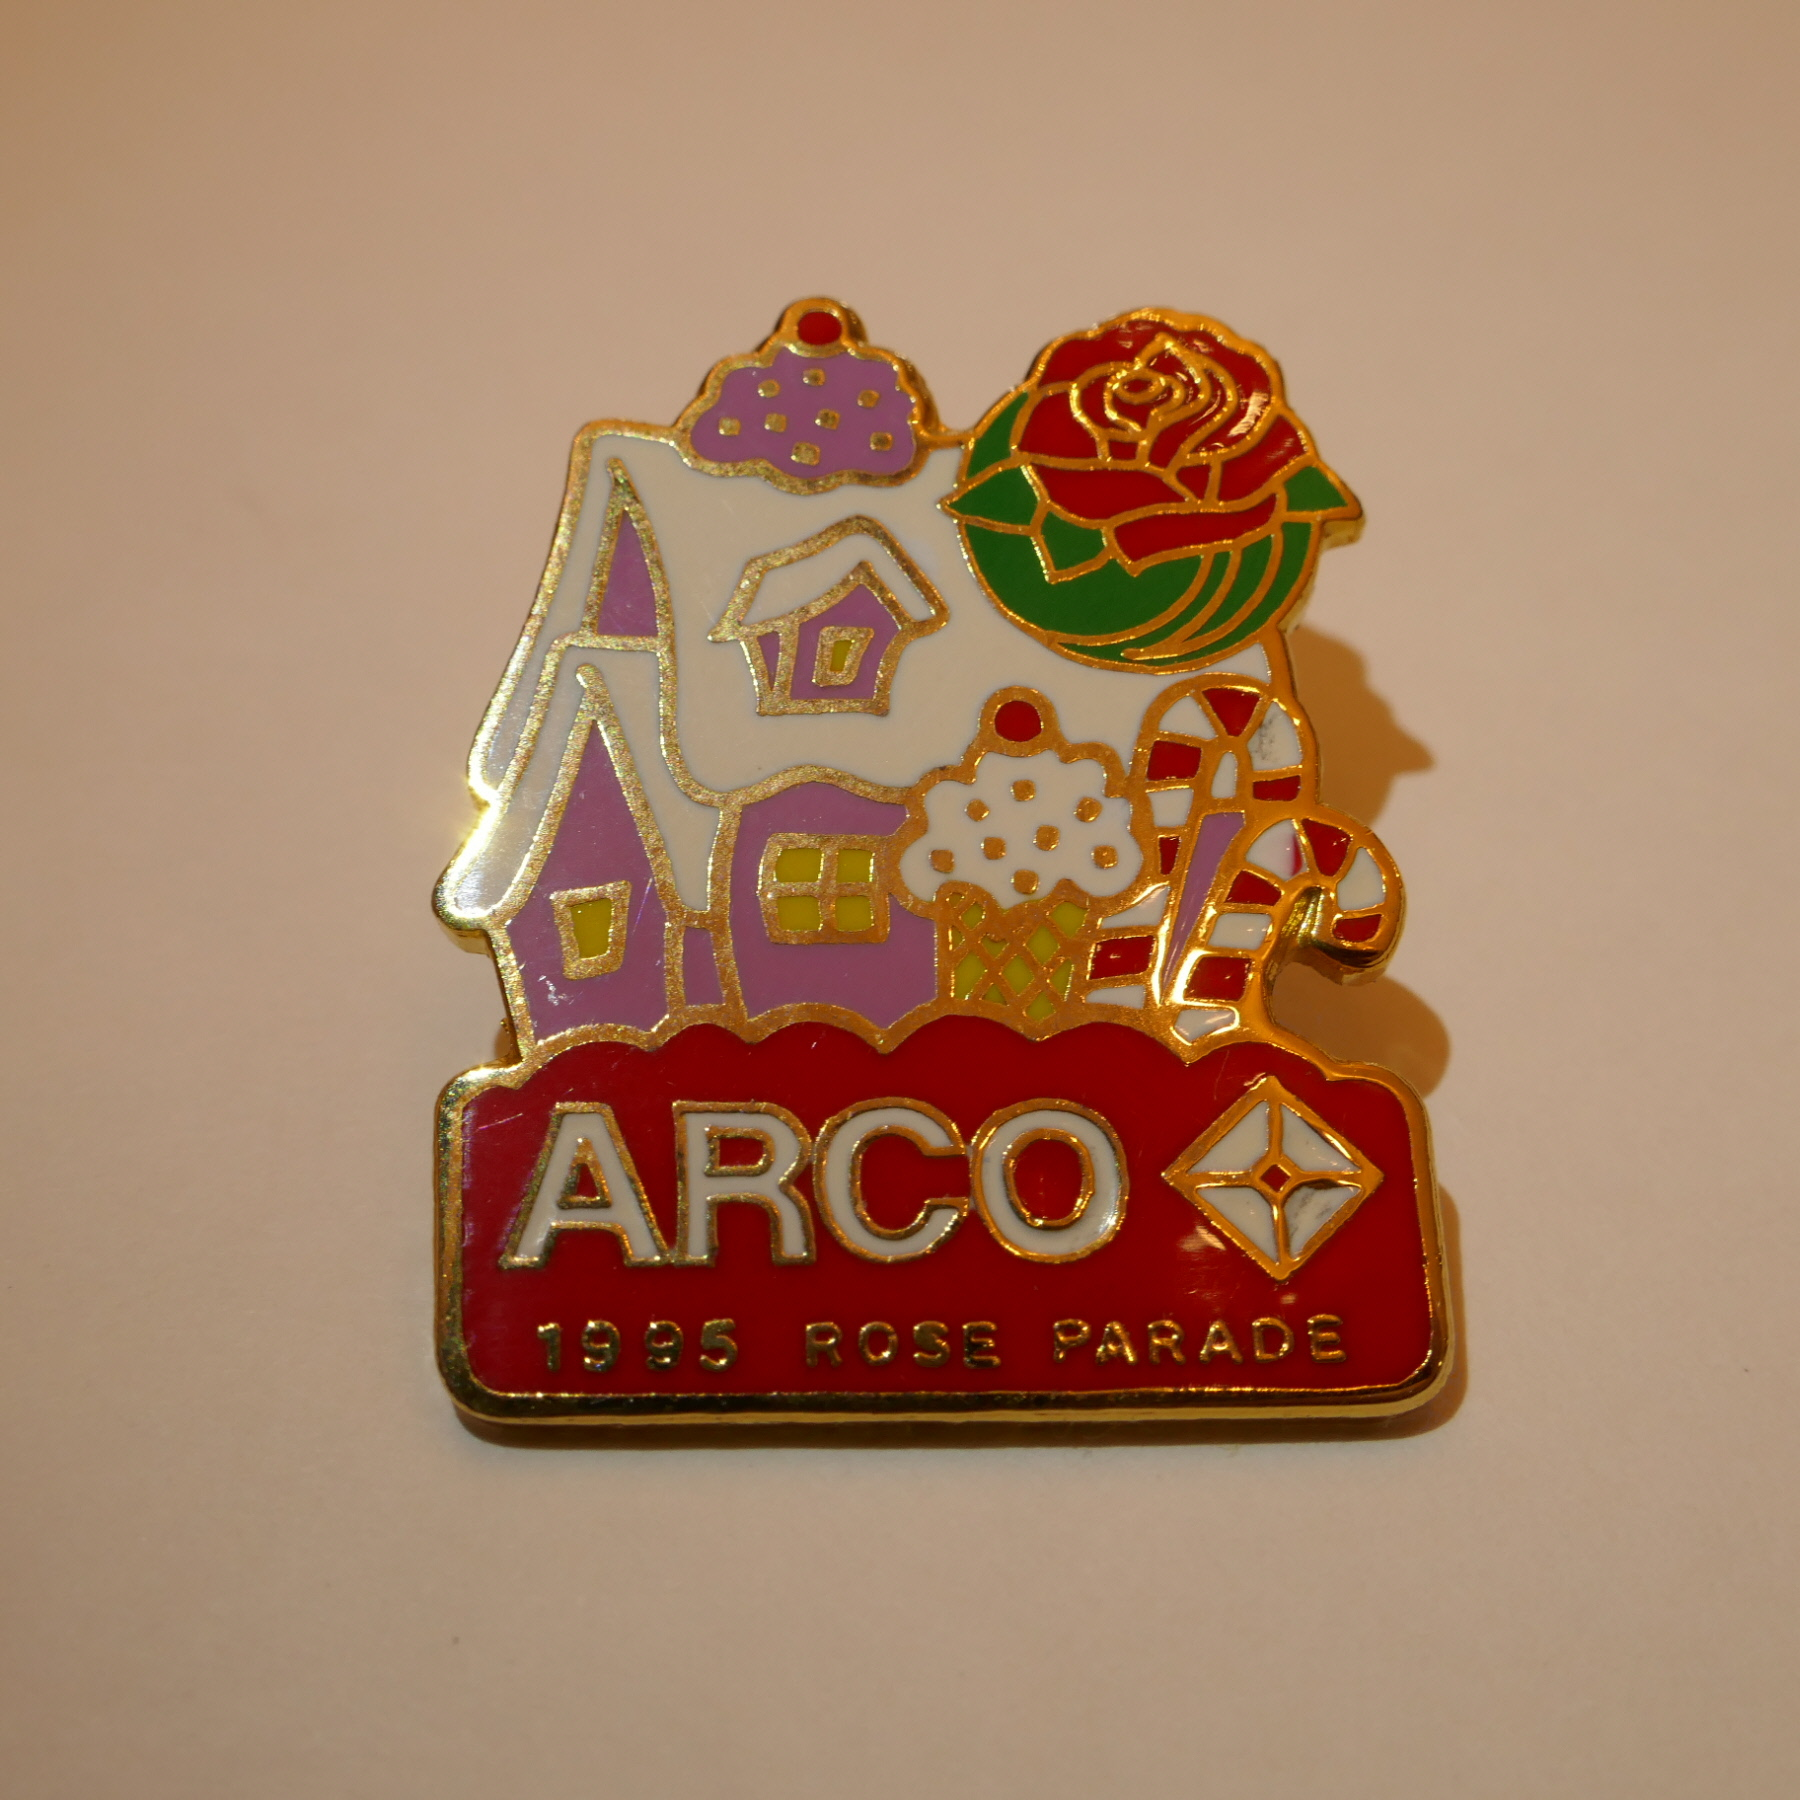 ARCO 1995 rose parade pins